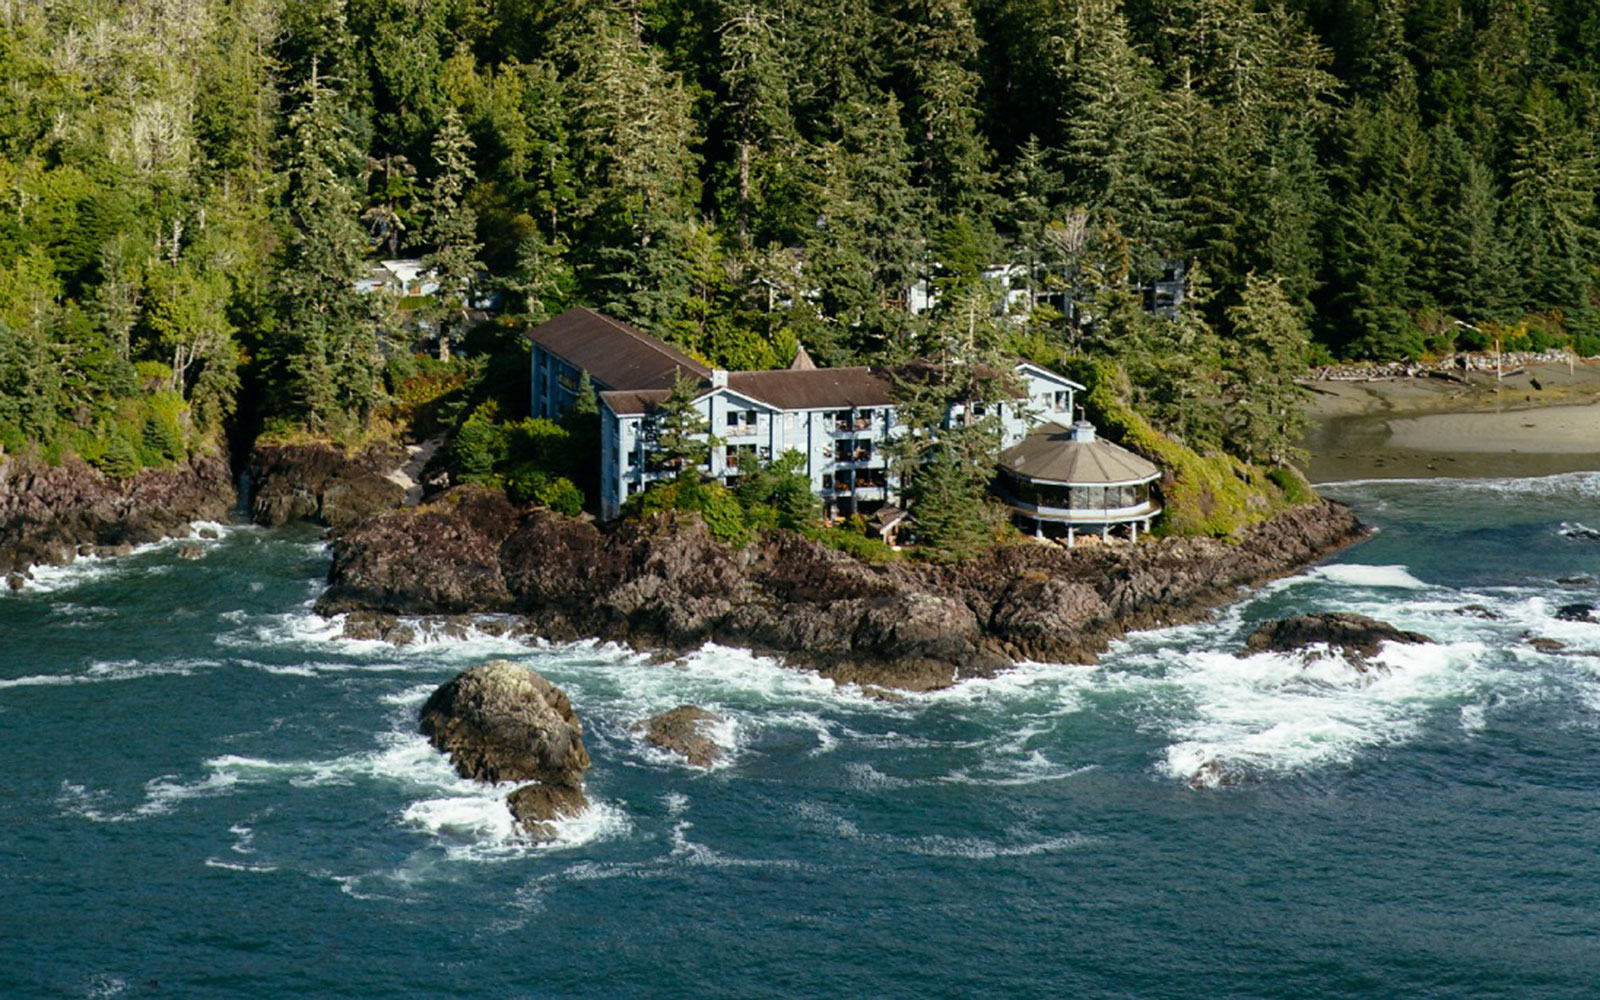 World's Best Beach Hotels: No. 3 Wickaninnish Inn, Tofino, British Columbia